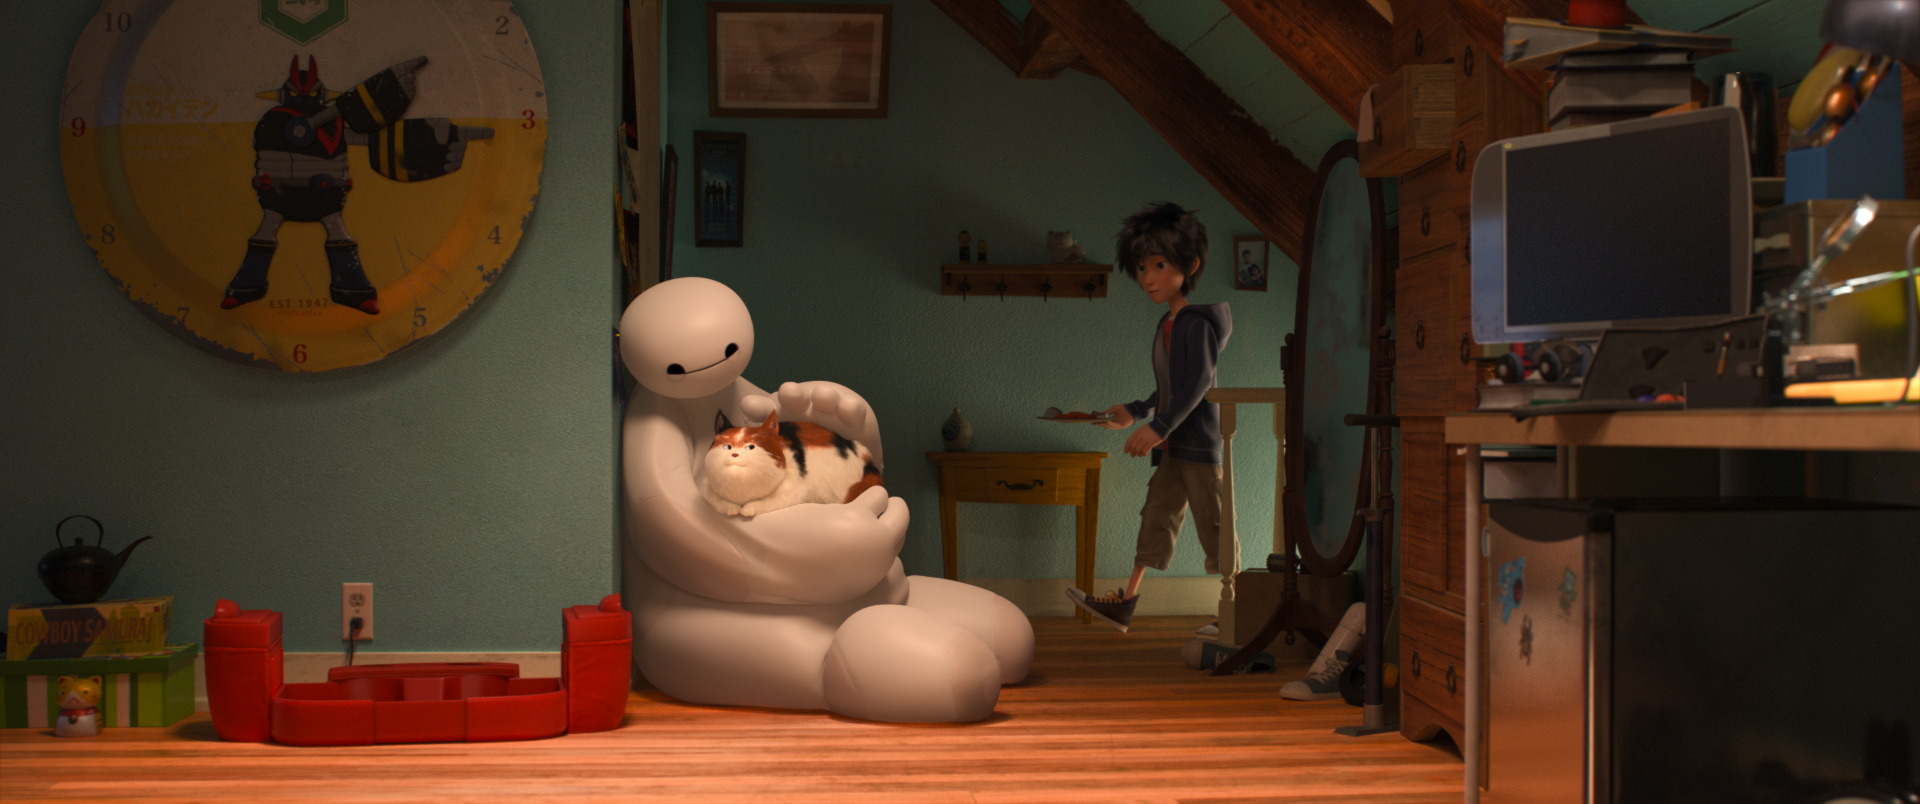 """BIG HERO 6"" ©2014 Disney. All Rights Reserved."